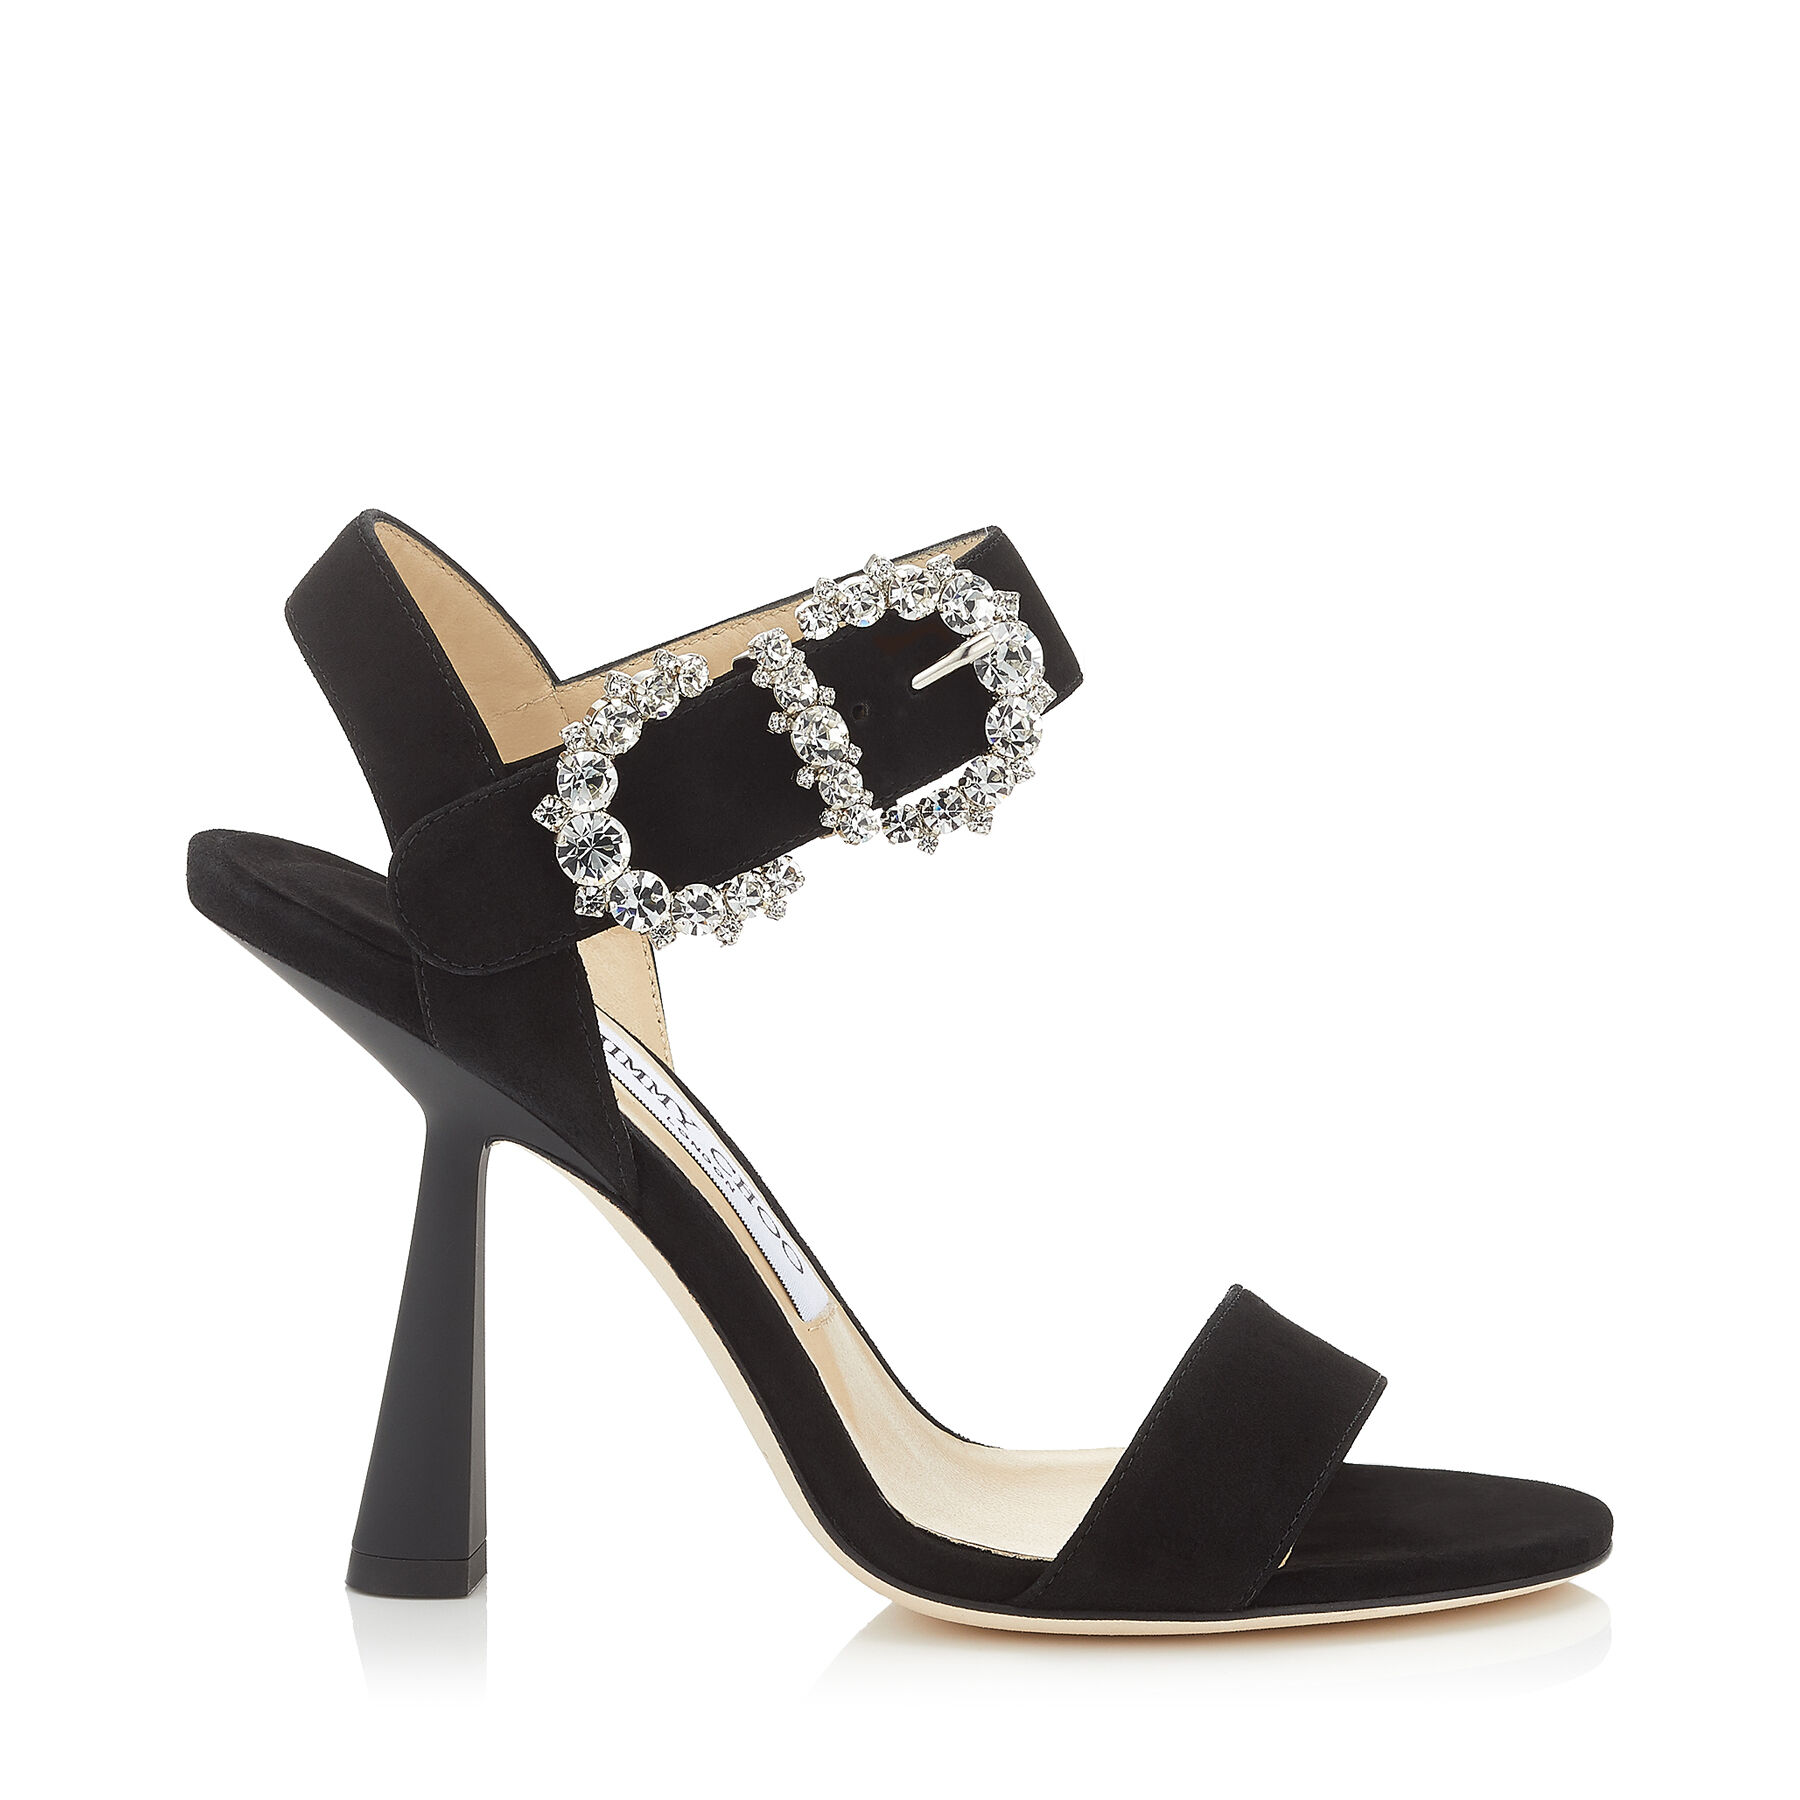 Black Suede Sandal with Jewelled Buckle